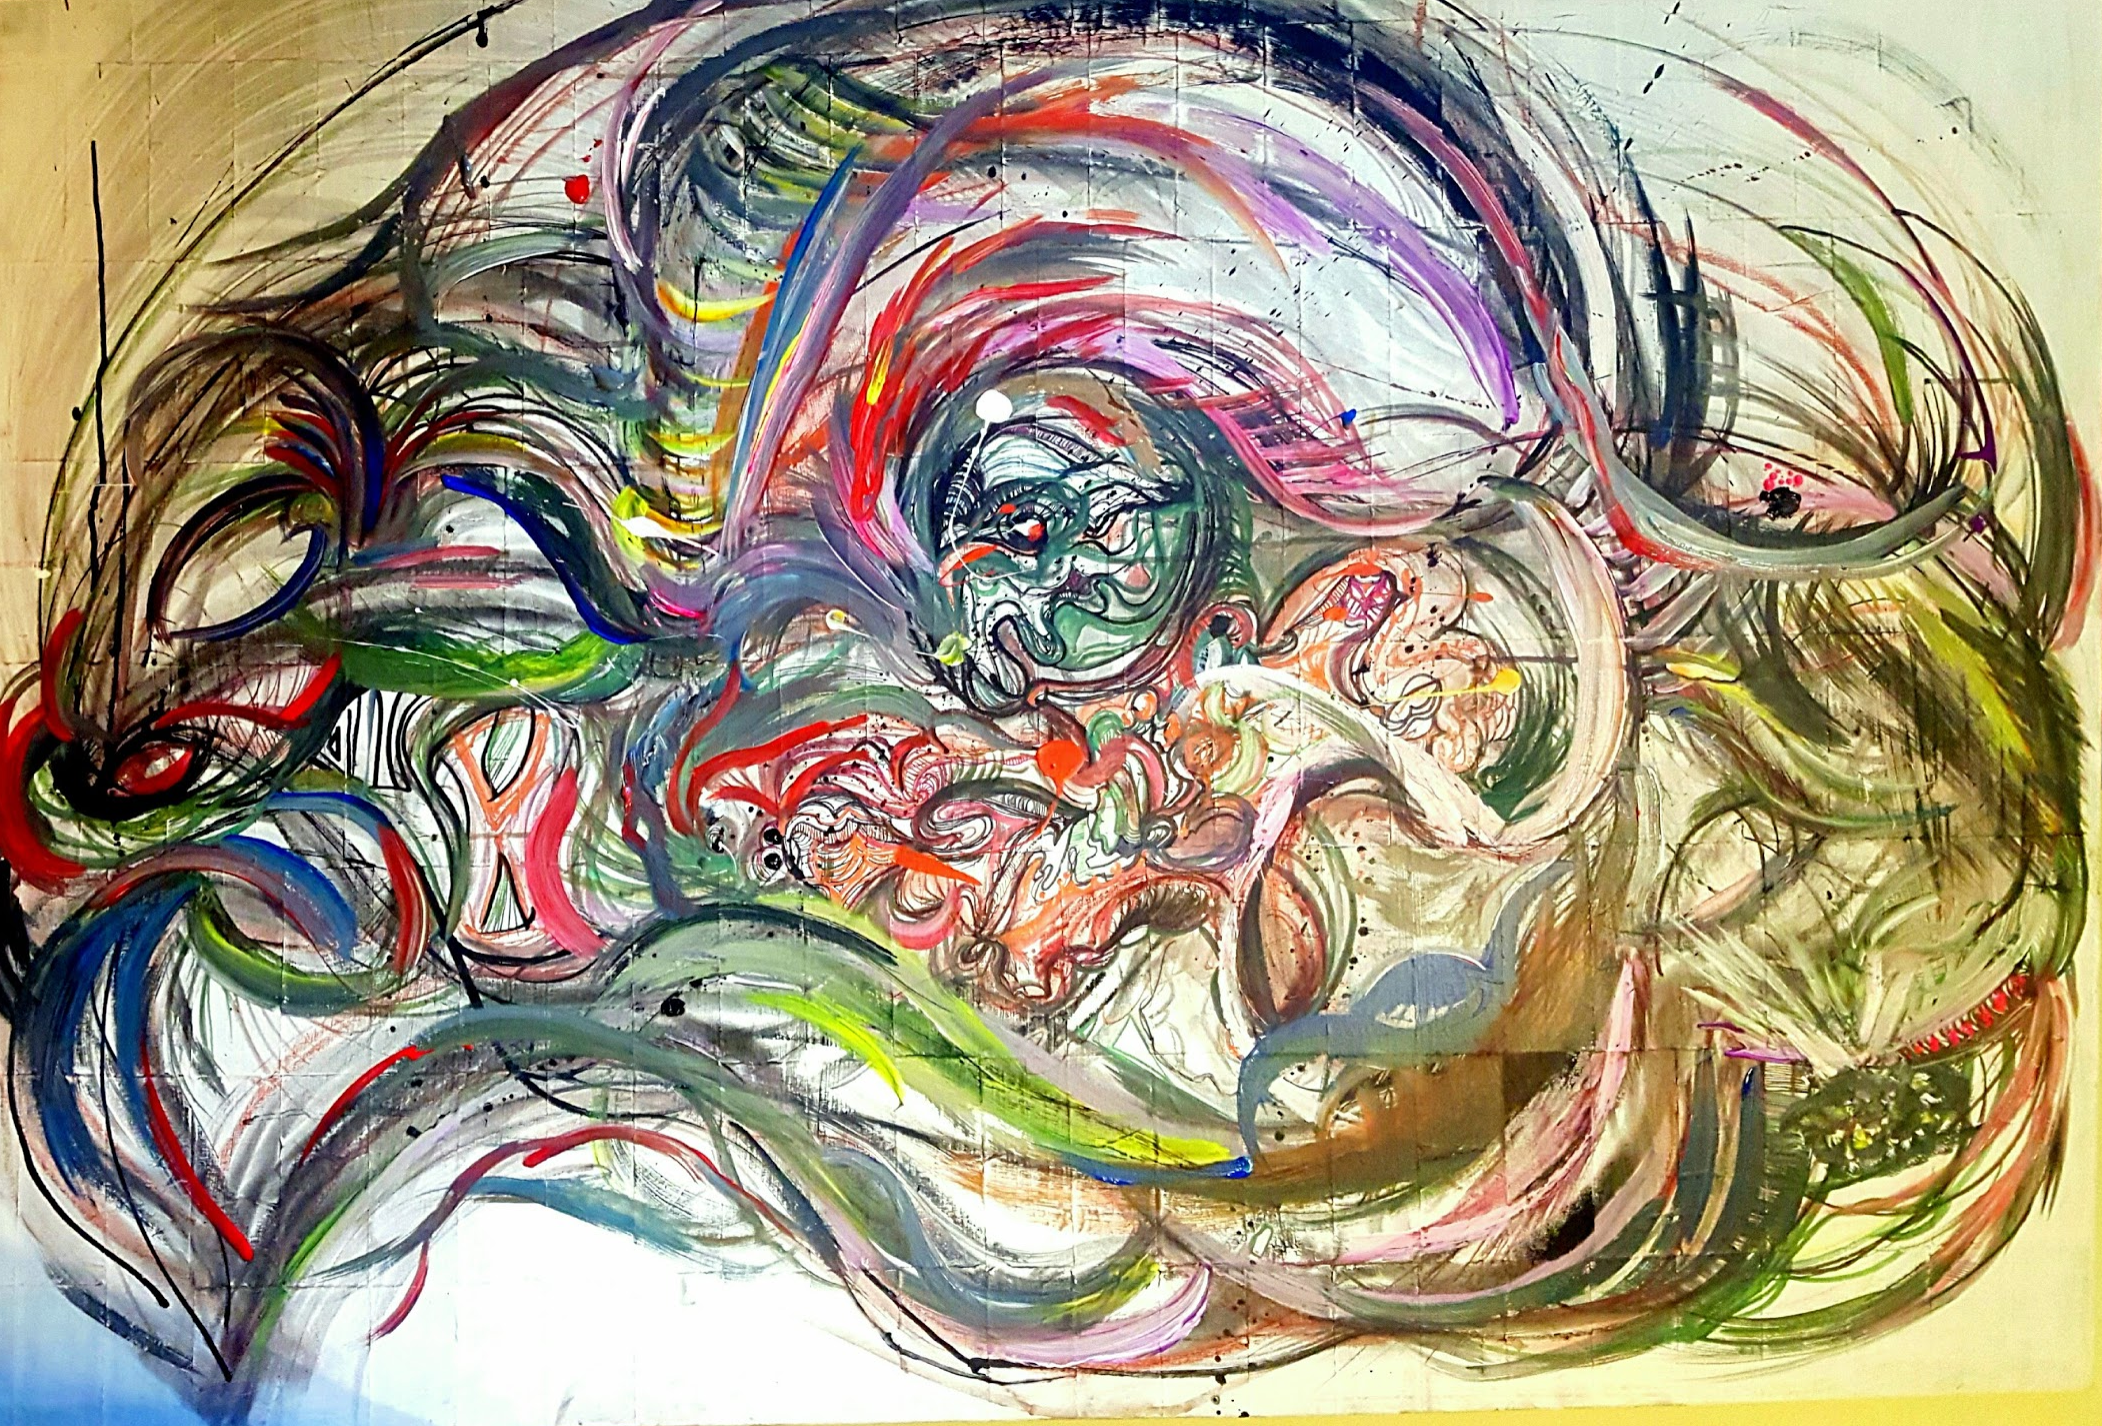 5' 4- X 3' 8- Pen, Ink, Charcoal, Acrylic on Canvas by terkwoize